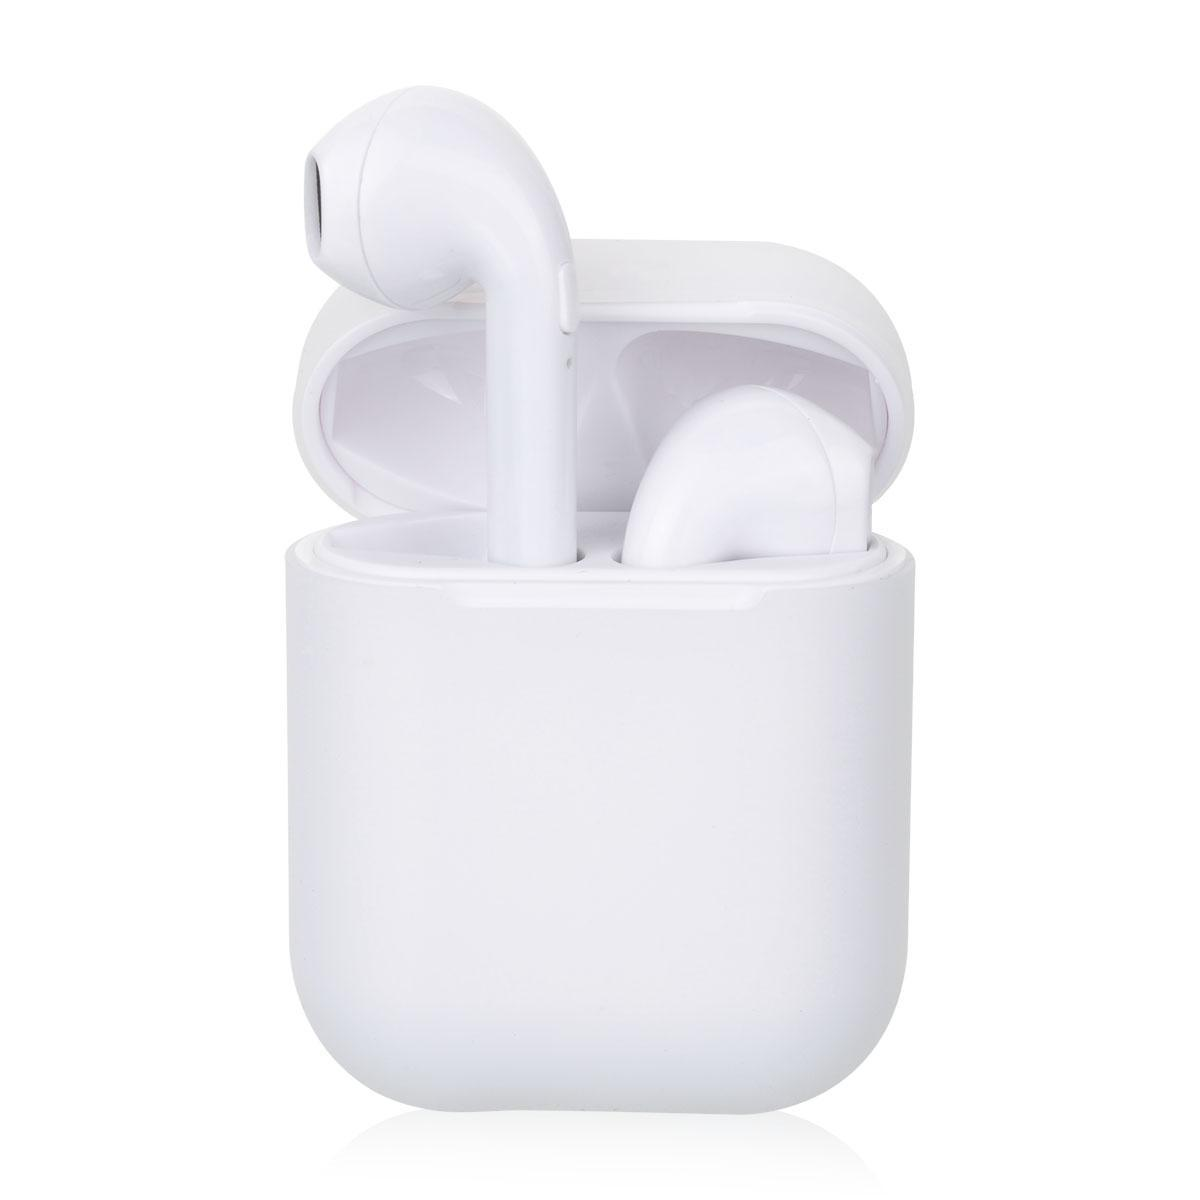 X8 TWS Mini Wireless Bluetooth Stereo Earphone Air Pods Earbuds with Charging Box - White